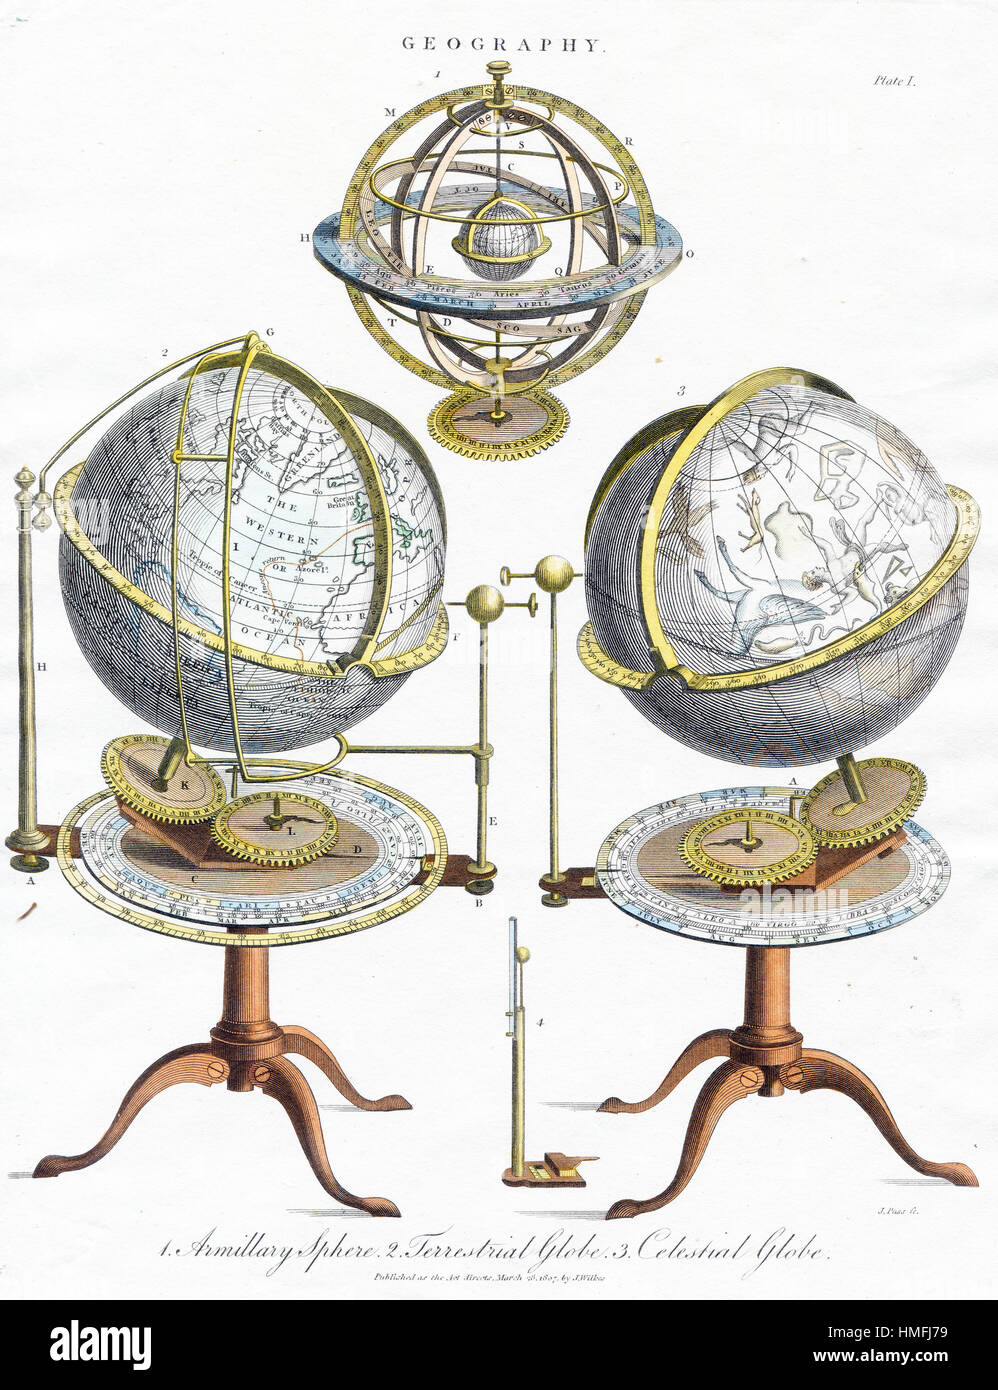 1807 - GEOGRAPHY - ARMILLARY SPHERE , TERRESTRIAL  GLOBE AND  CELESTIAL GLOBE. - Stock Image